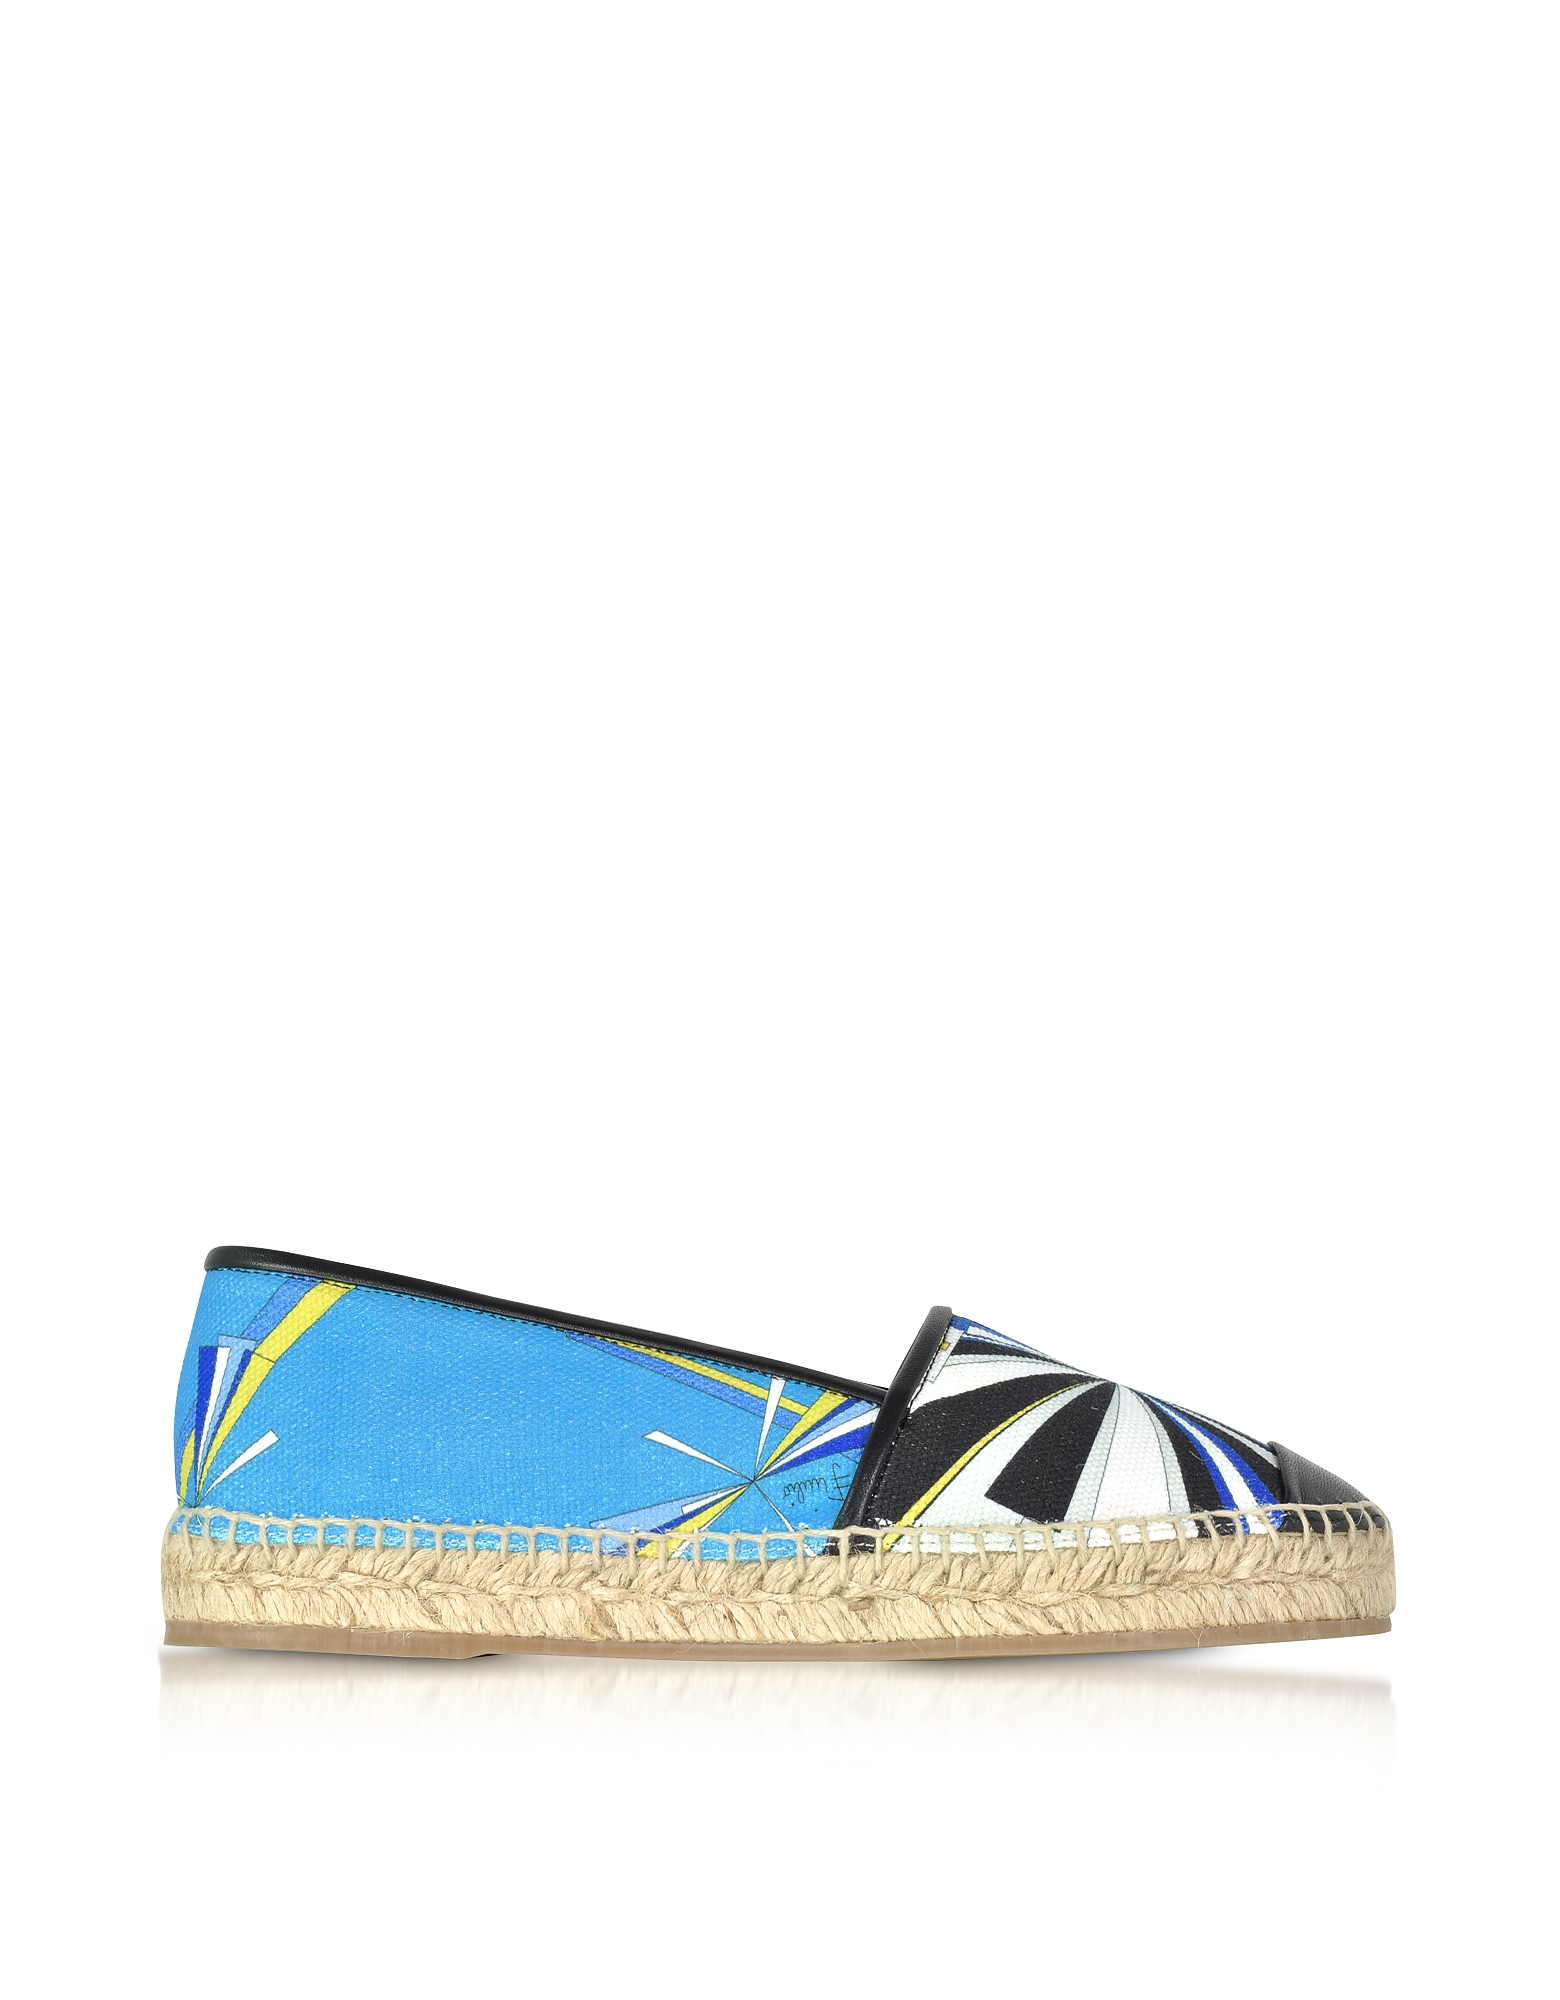 Emilio Pucci Shoes, Turquoise Printed Cotton and Leather Espadrilles